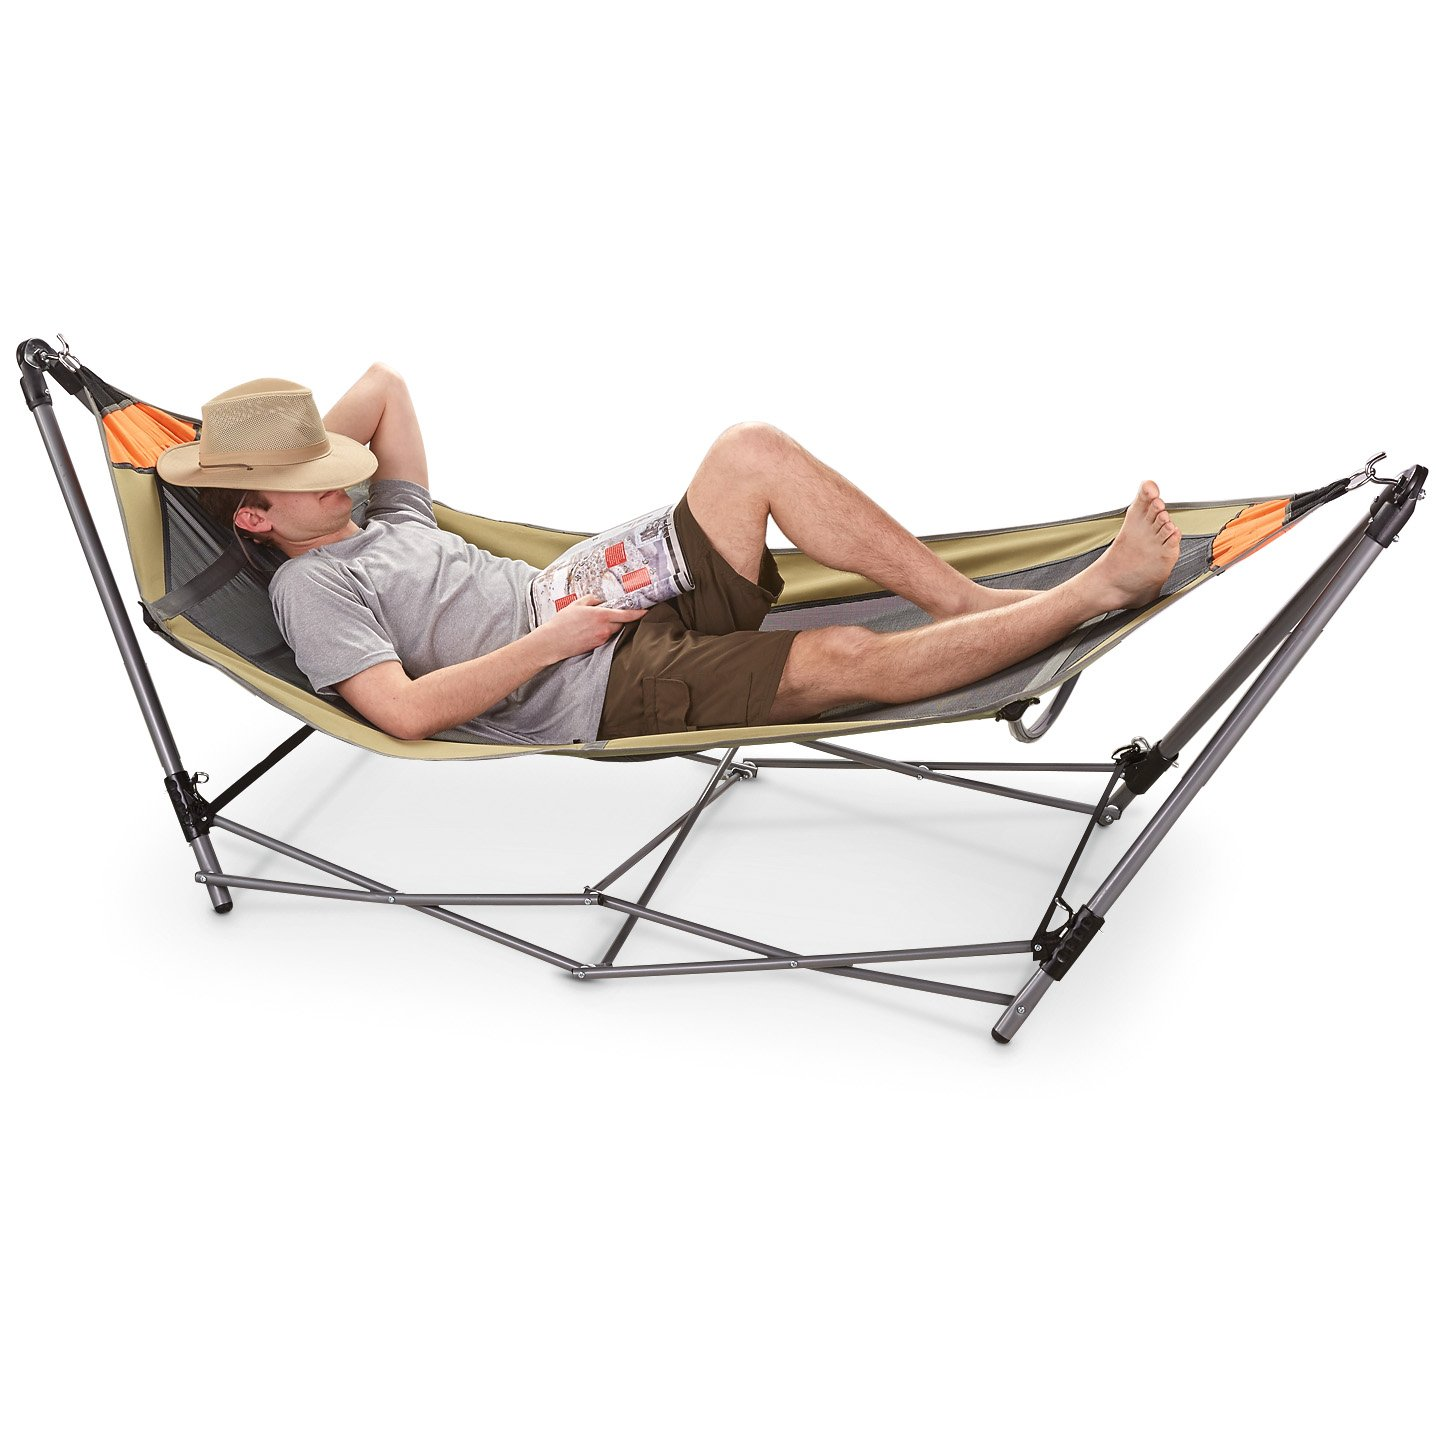 ideas folding portable spruce foldable hammock frame with set furniture porch perfect also adorable swing cloth is blue up the metal your to stand backyard